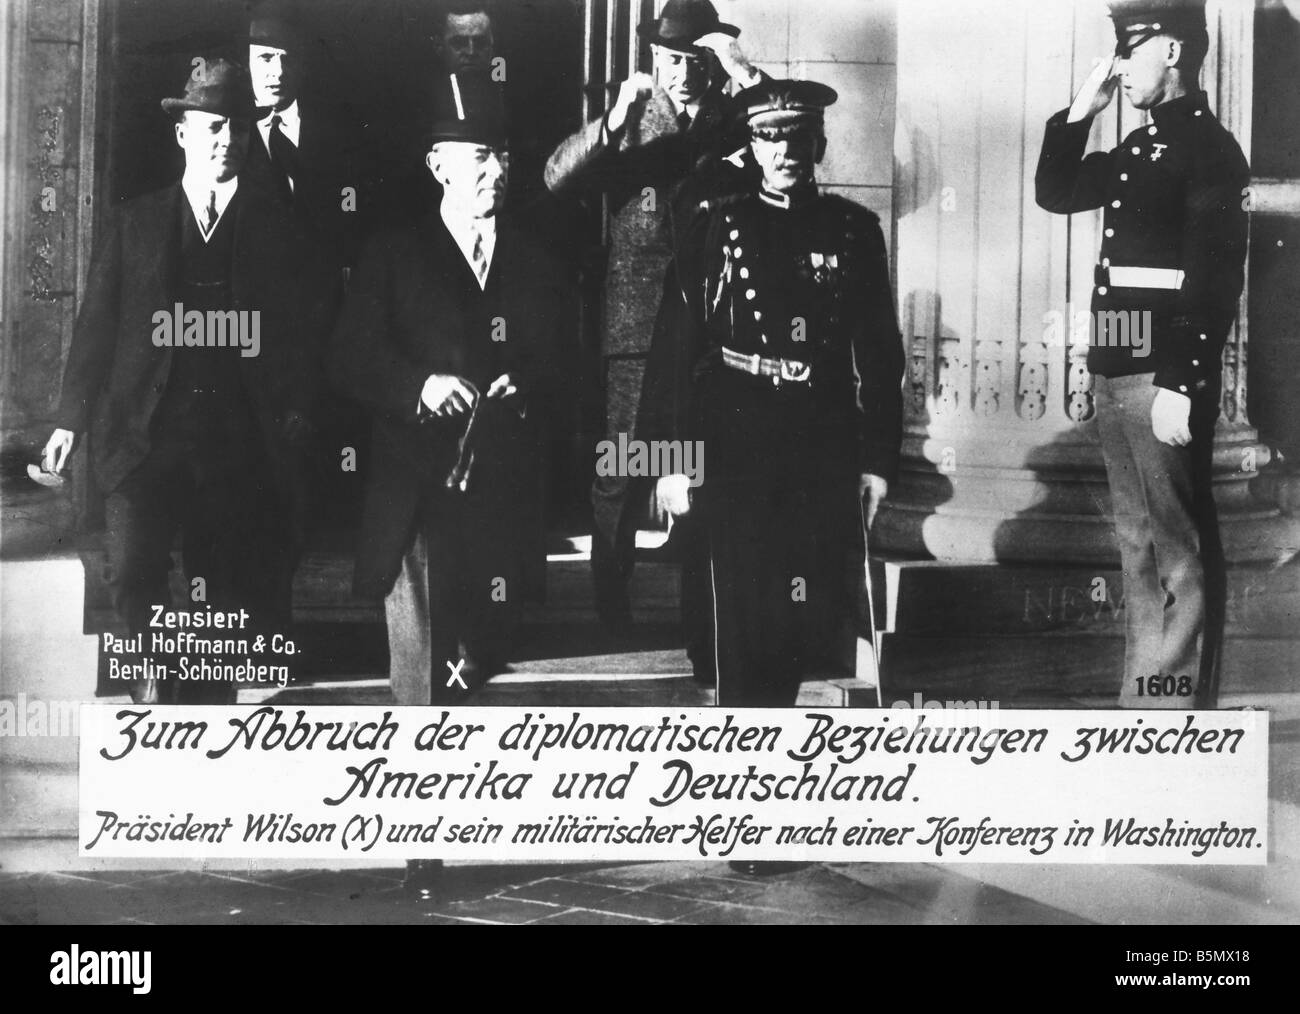 9US 1917 2 3 A1 E WW1 Break of dipl relations Ger Emp World War 1 USA 1917 18 Break off of diplomatic relations - Stock Image